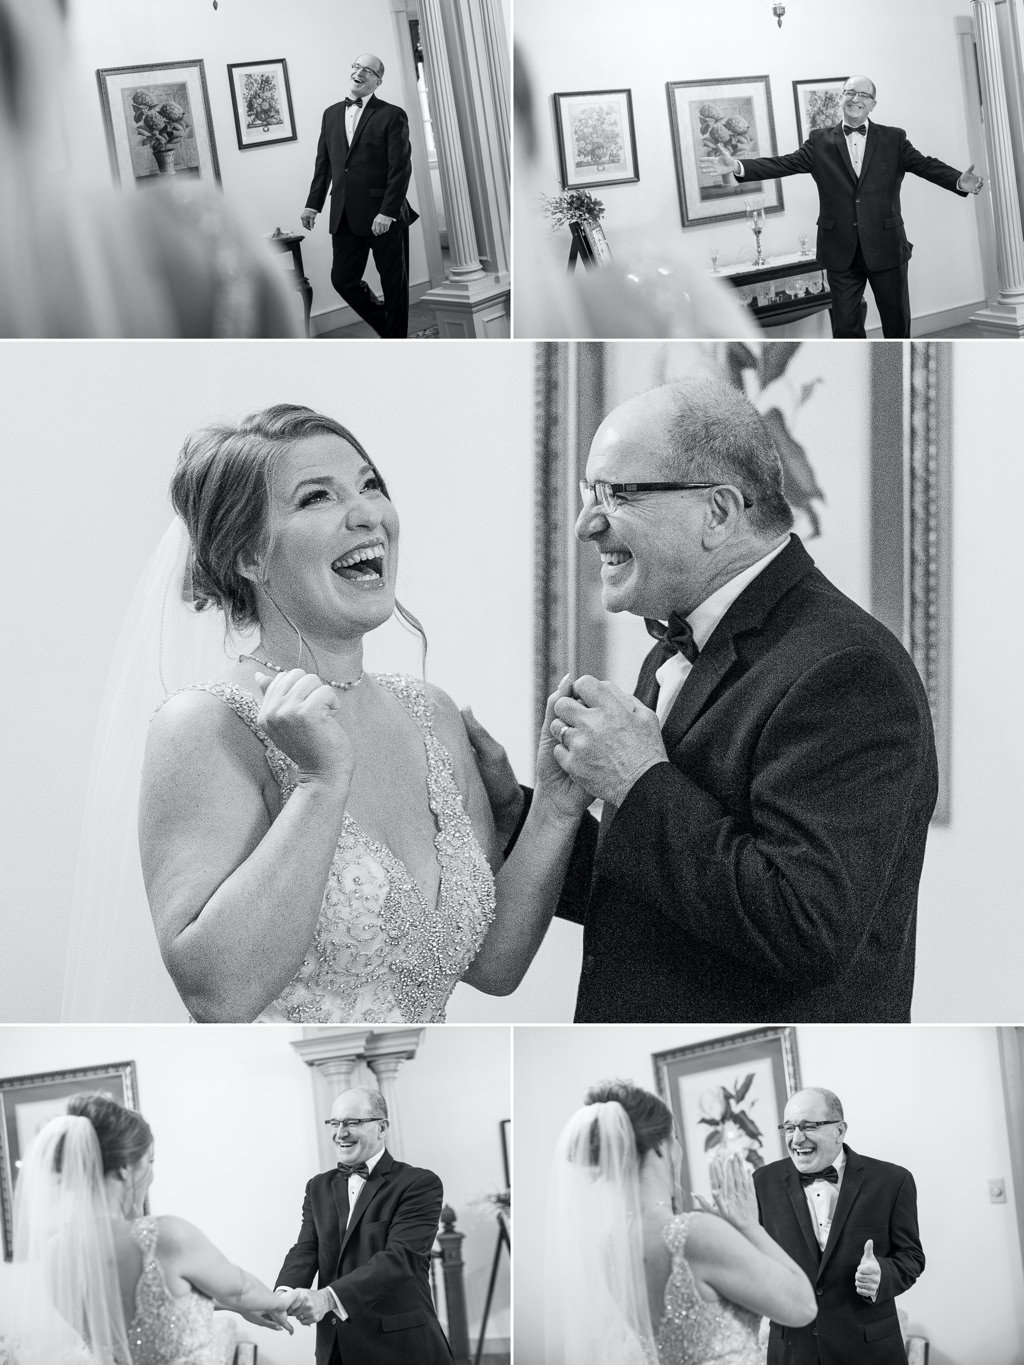 A bride and her dad showing their excitement after seeing each other for the first time on the wedding day.